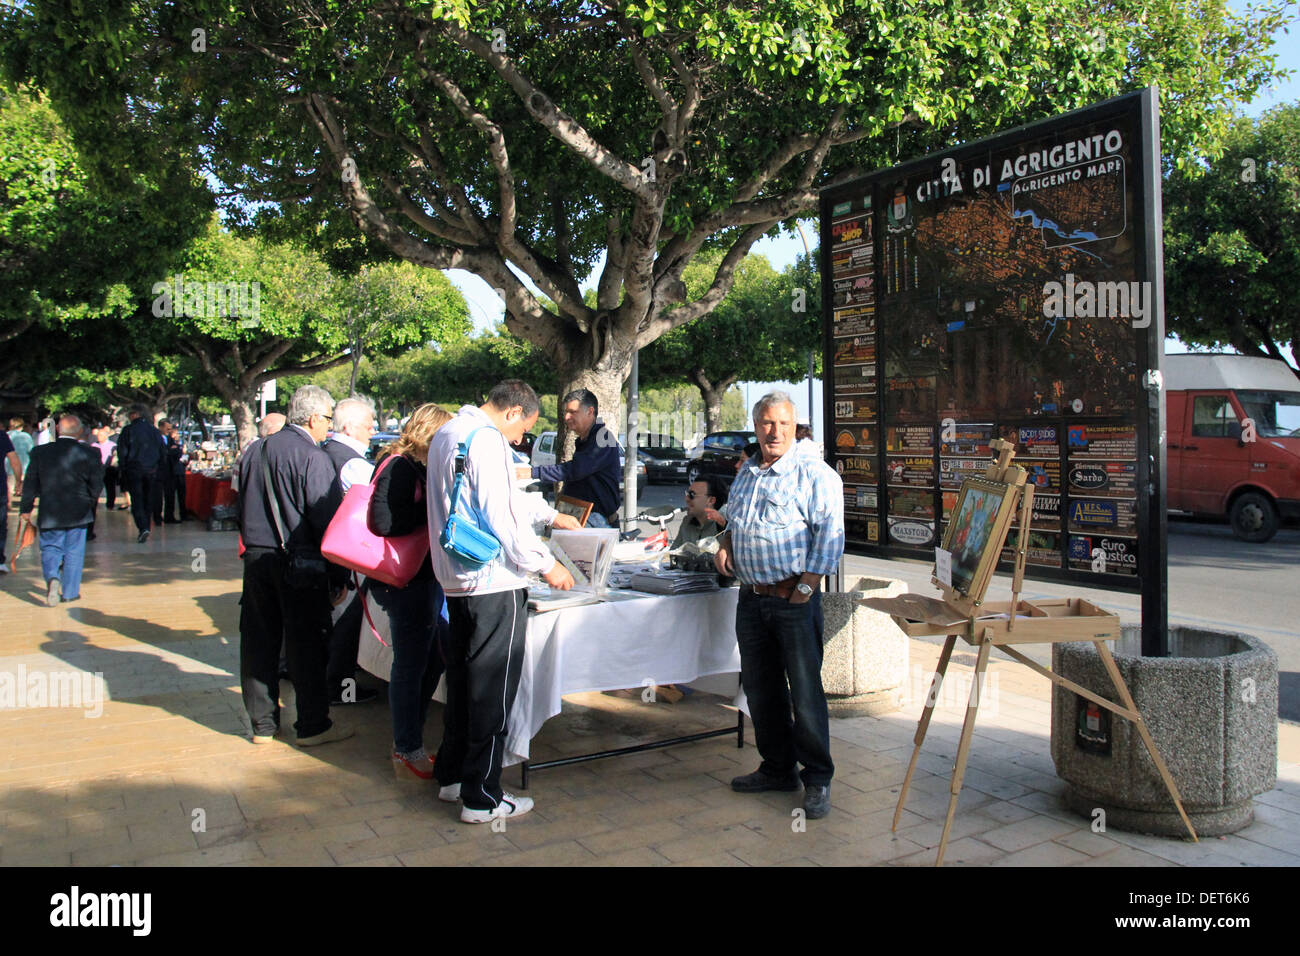 Tourists look at souvenirs for sale in the city of Agrigento. - Stock Image